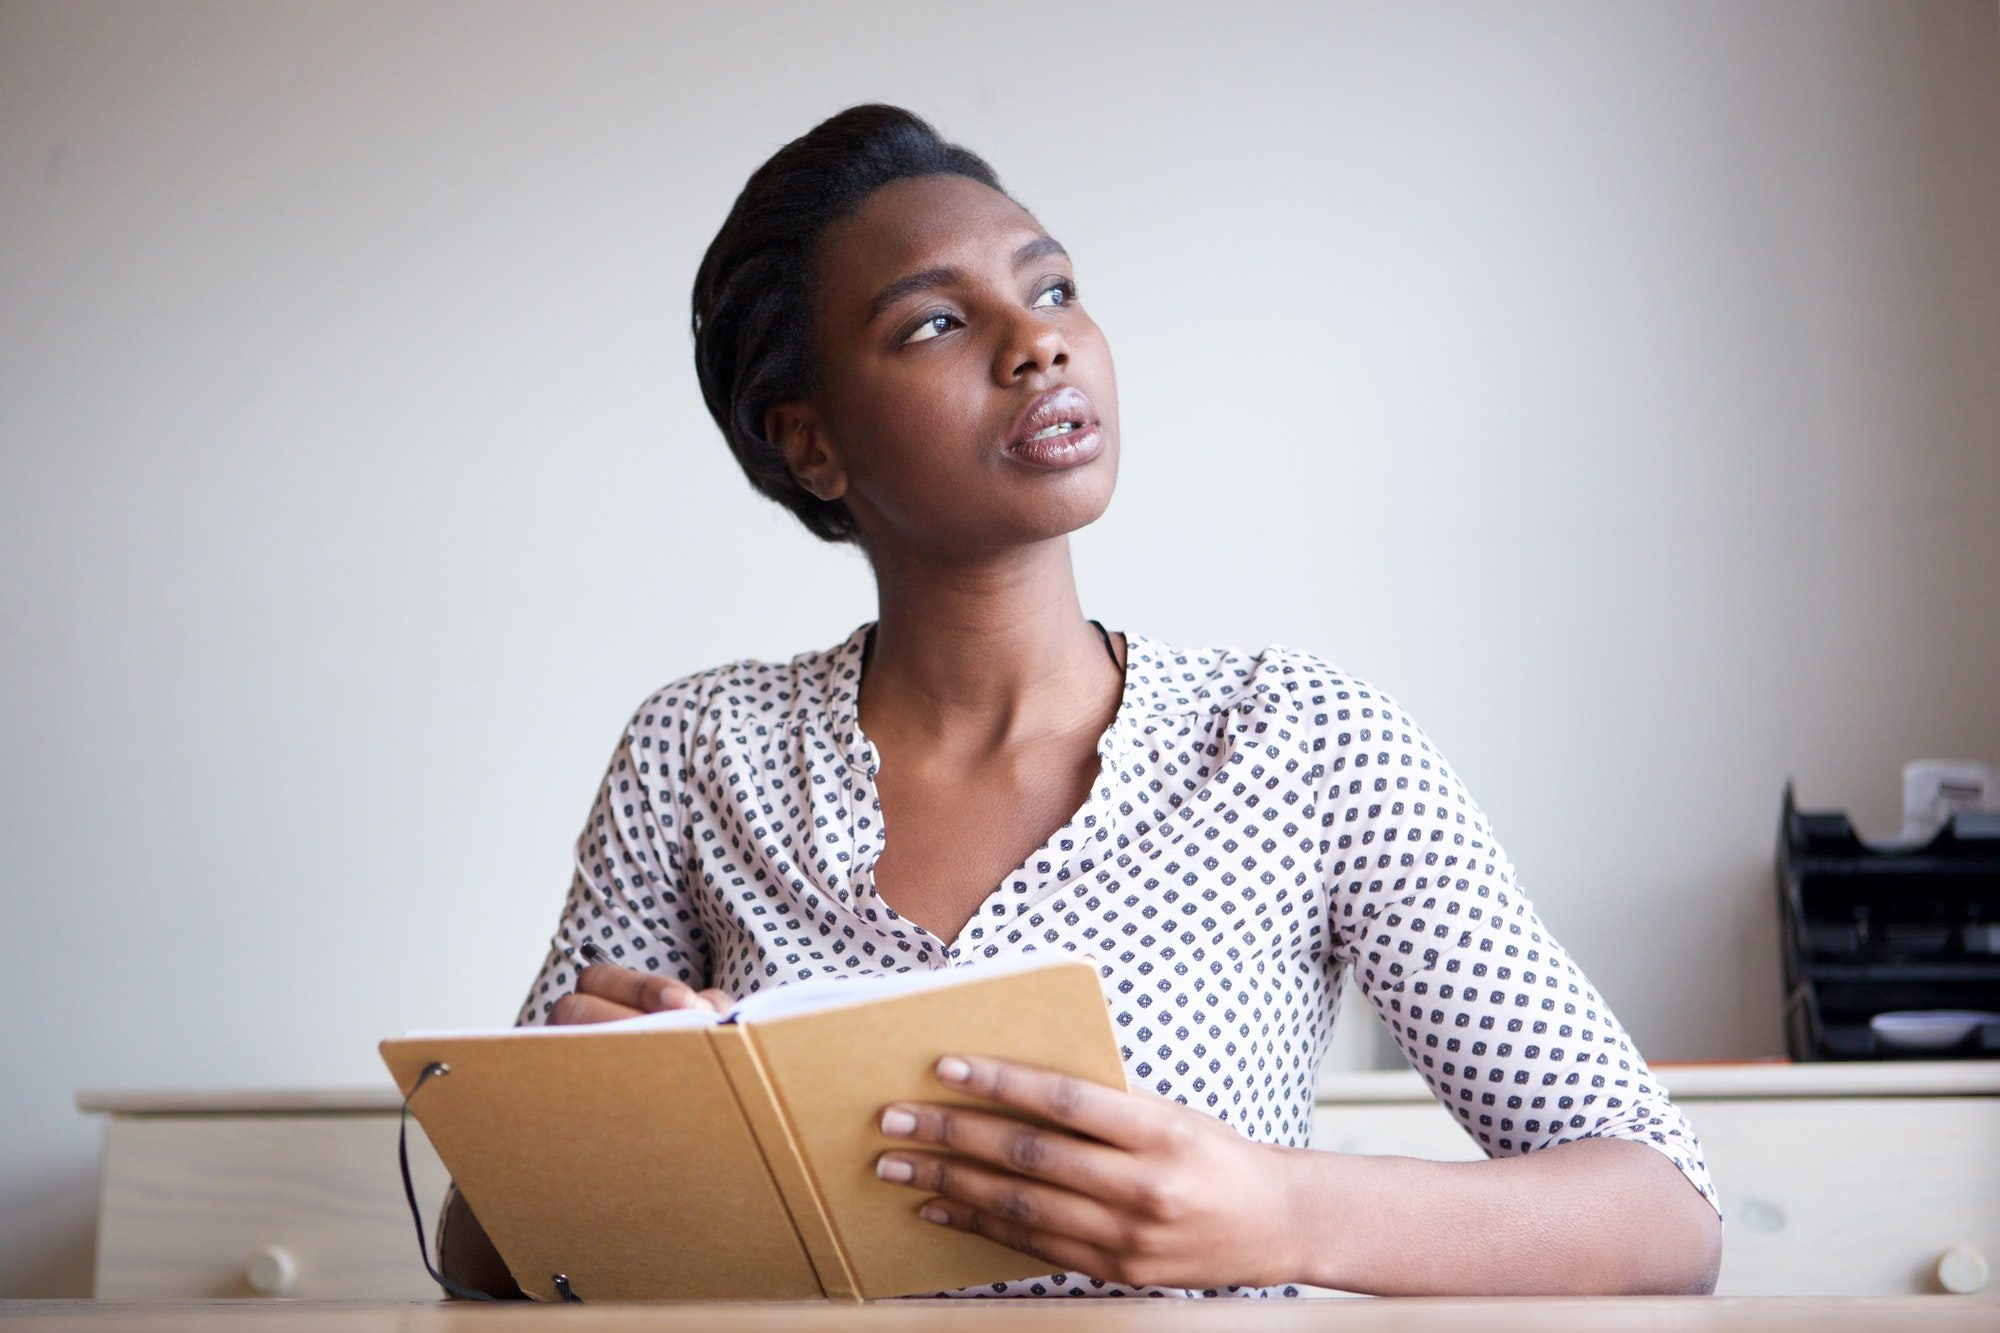 serious young woman thinking and writing in journal